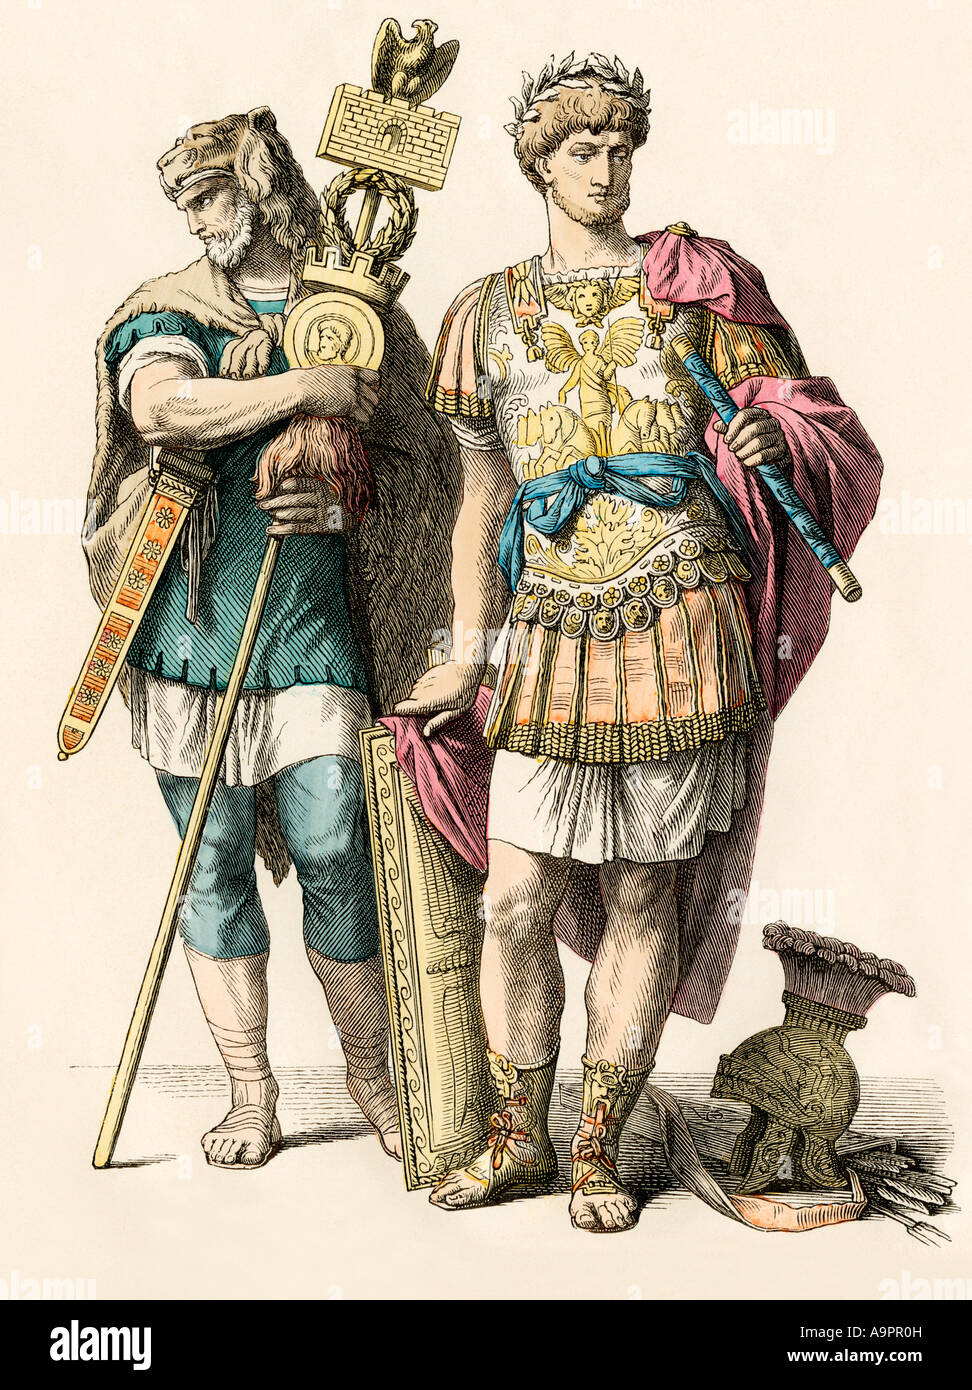 Roman general accompanied by a German warrior. Hand-colored print - Stock Image